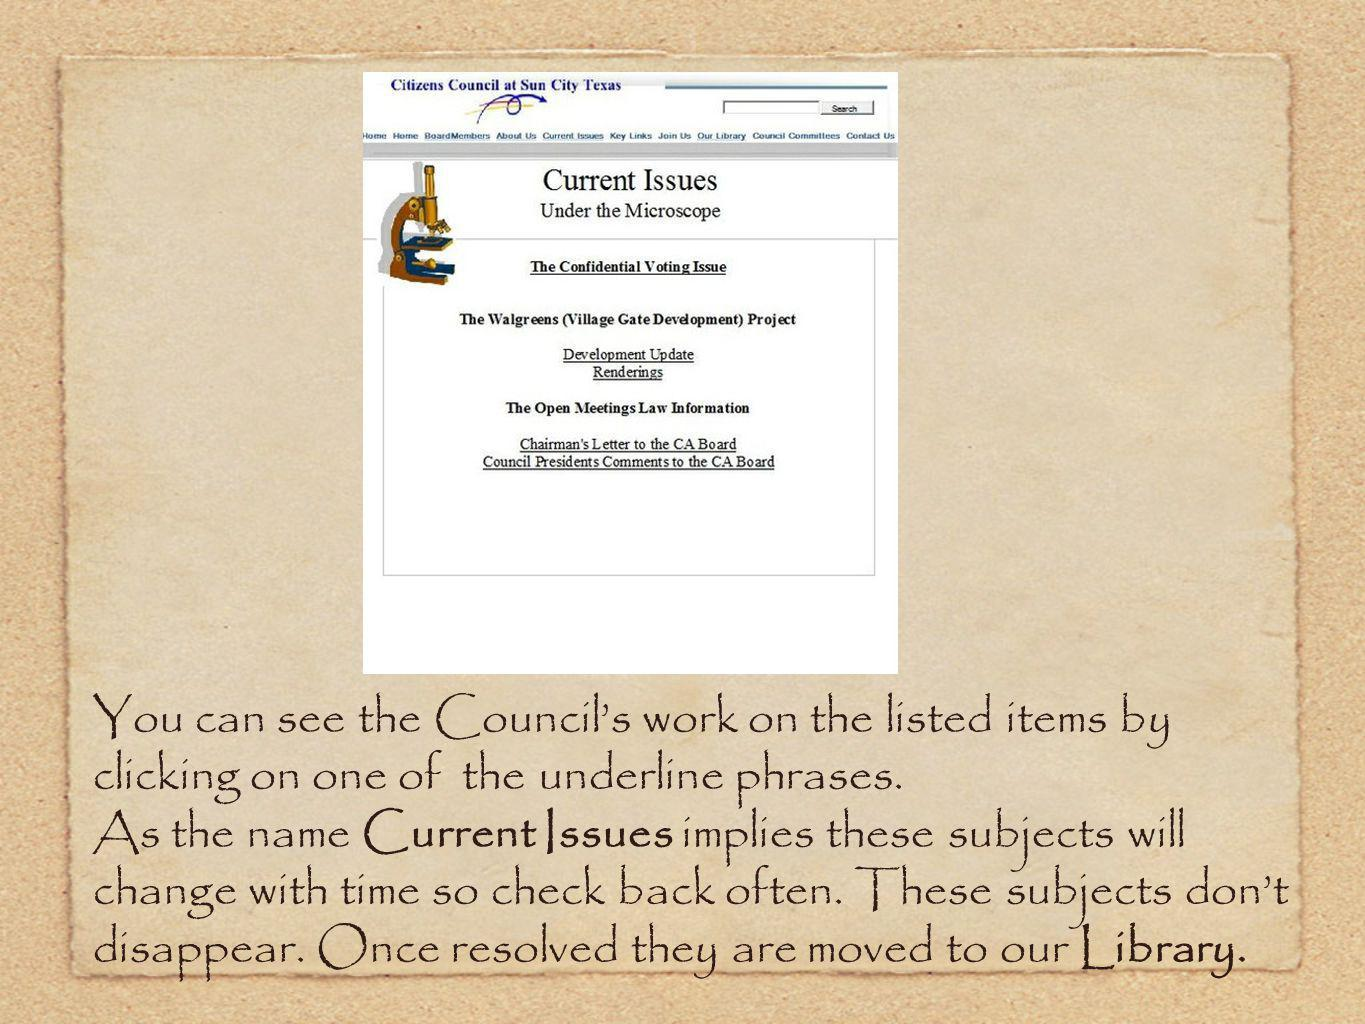 You can see the Councils work on the listed items by clicking on one of the underline phrases.